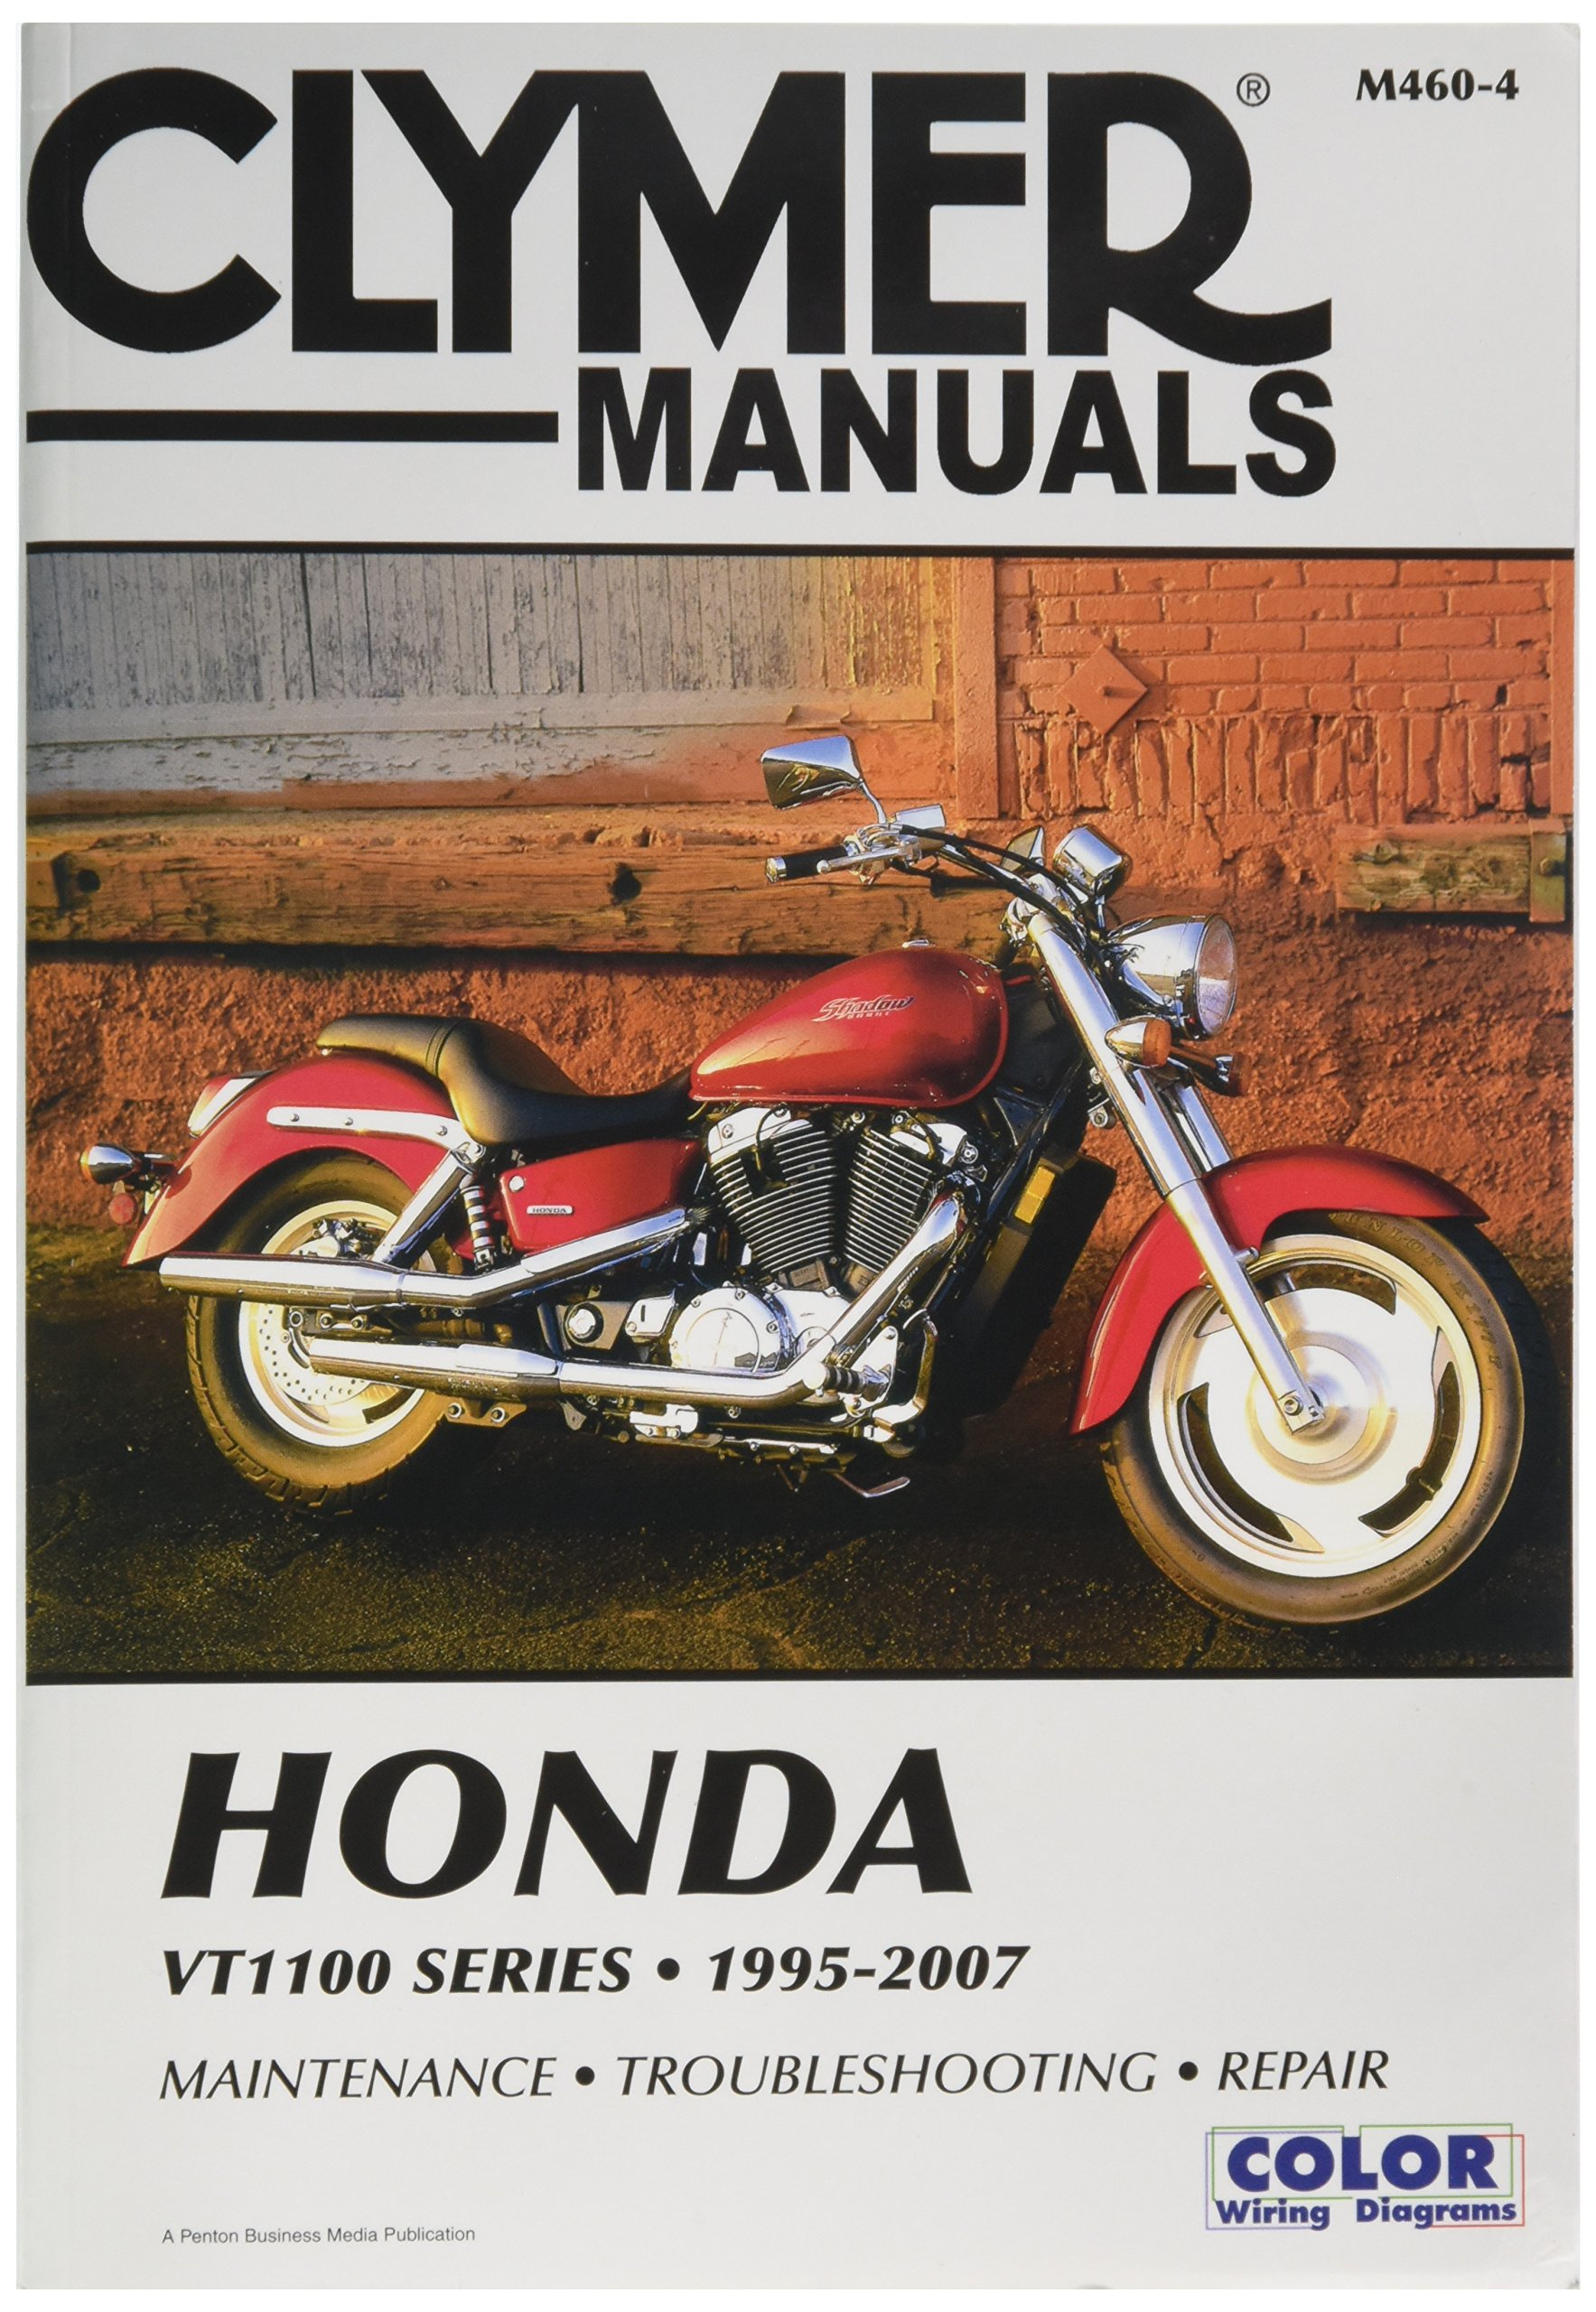 Clymer Repair Manual For Honda Vt1100 Vt 1100 Series 95 Shadow Wiring Diagram 07 Automotive